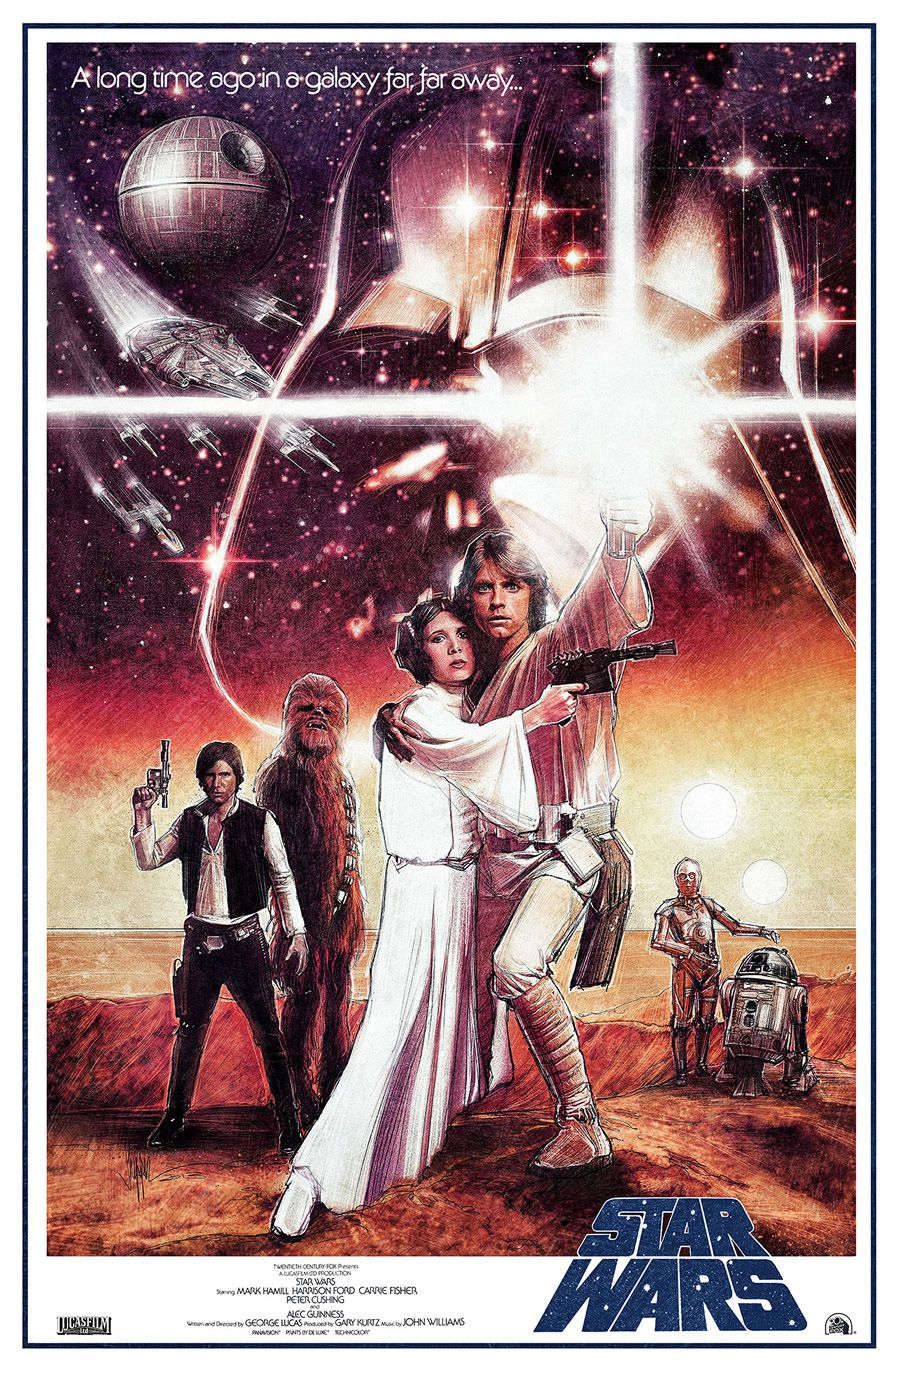 Paul shipper movie posters 10